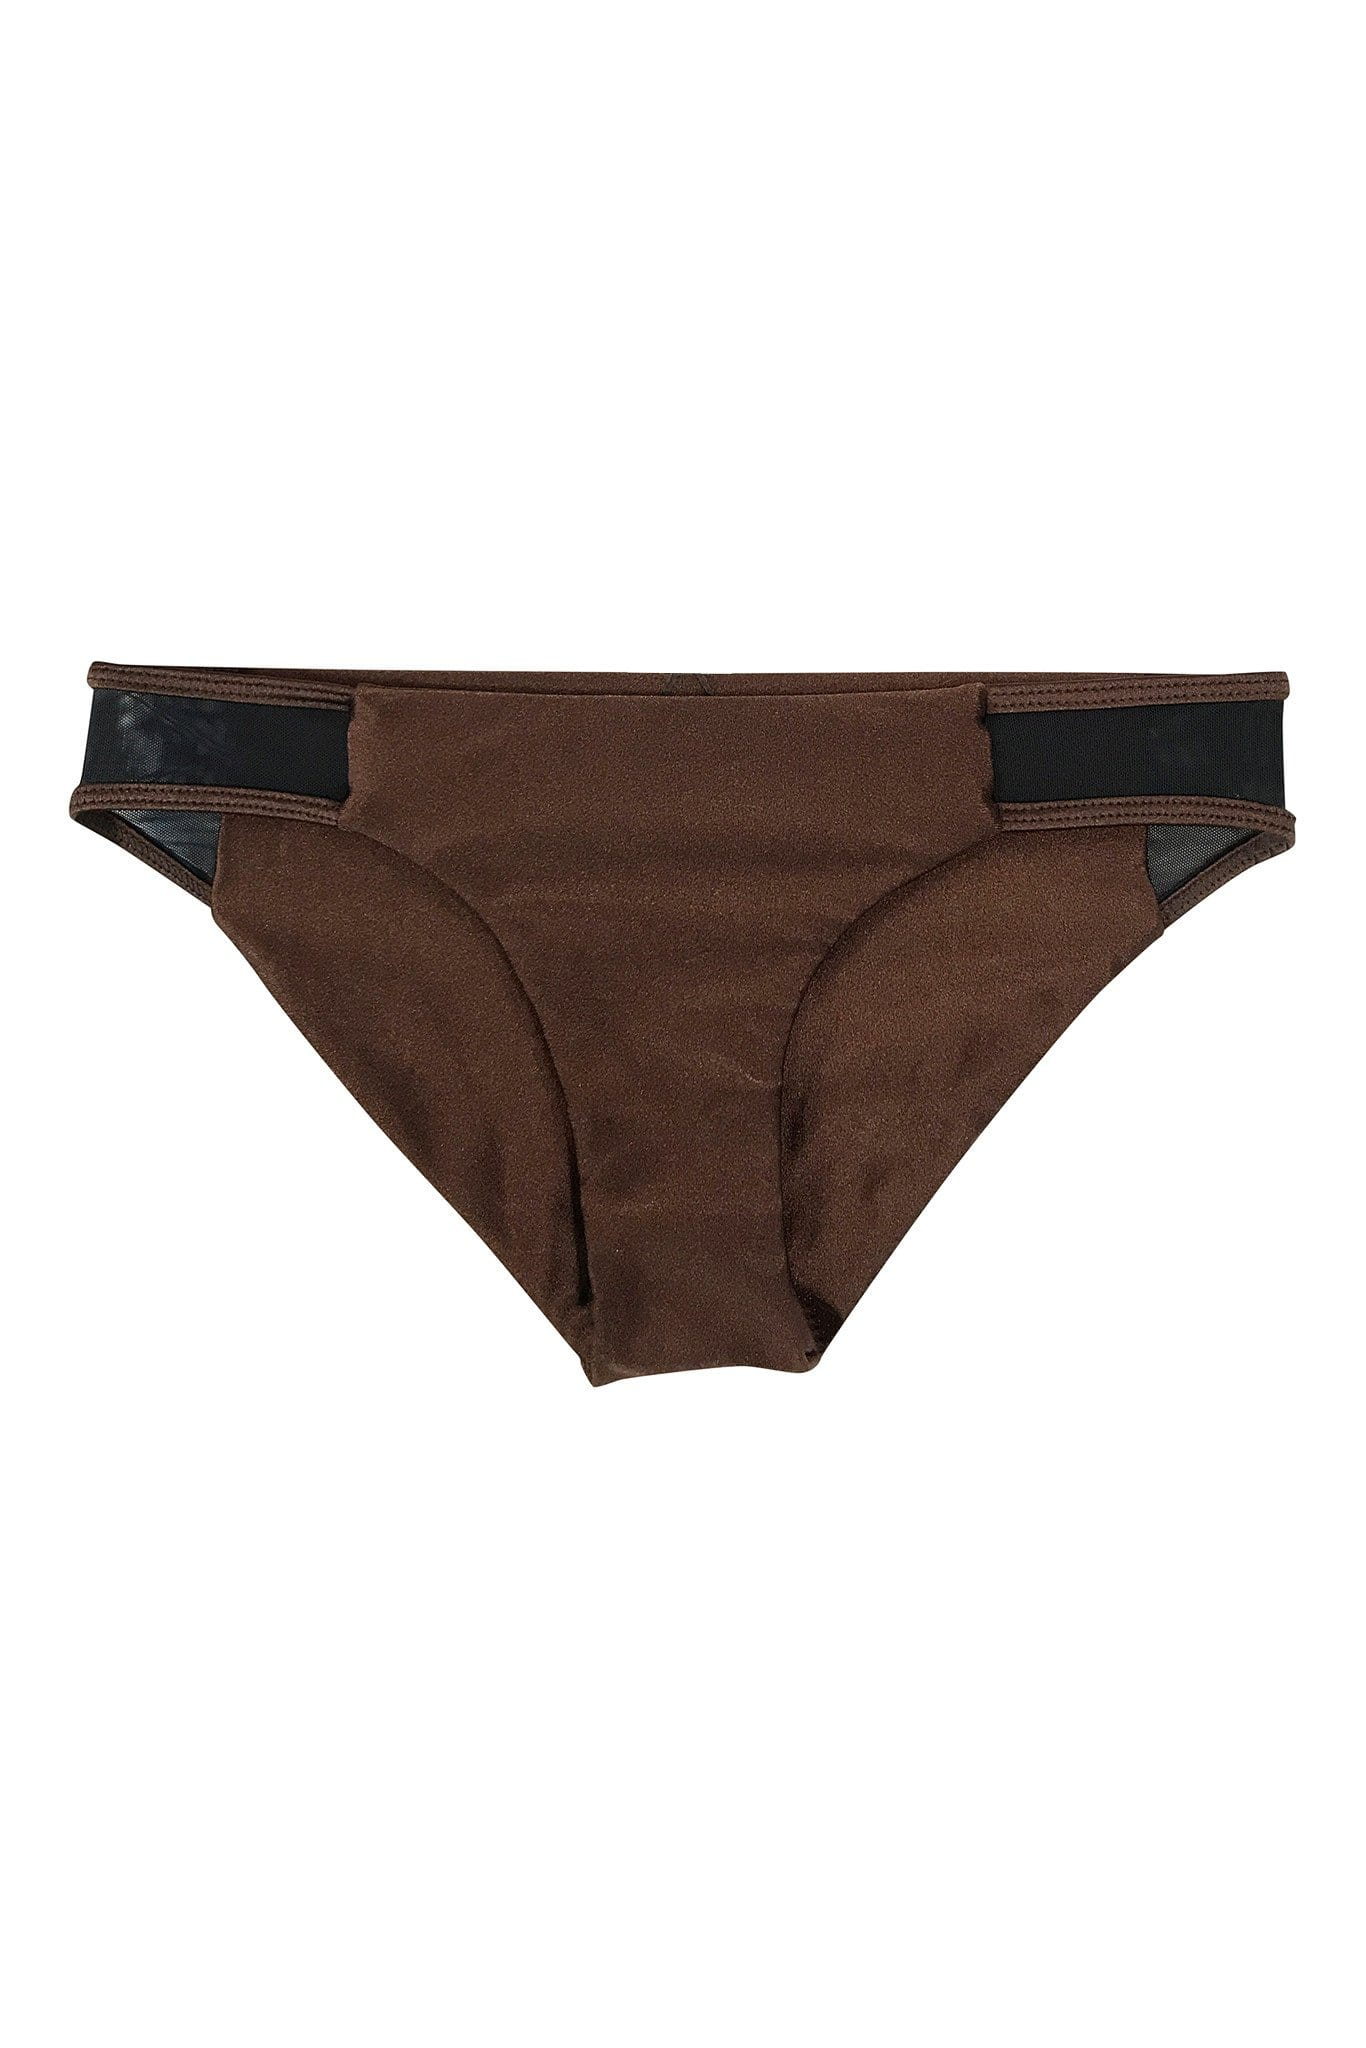 *SALE* Kaili Bottom Chocolate